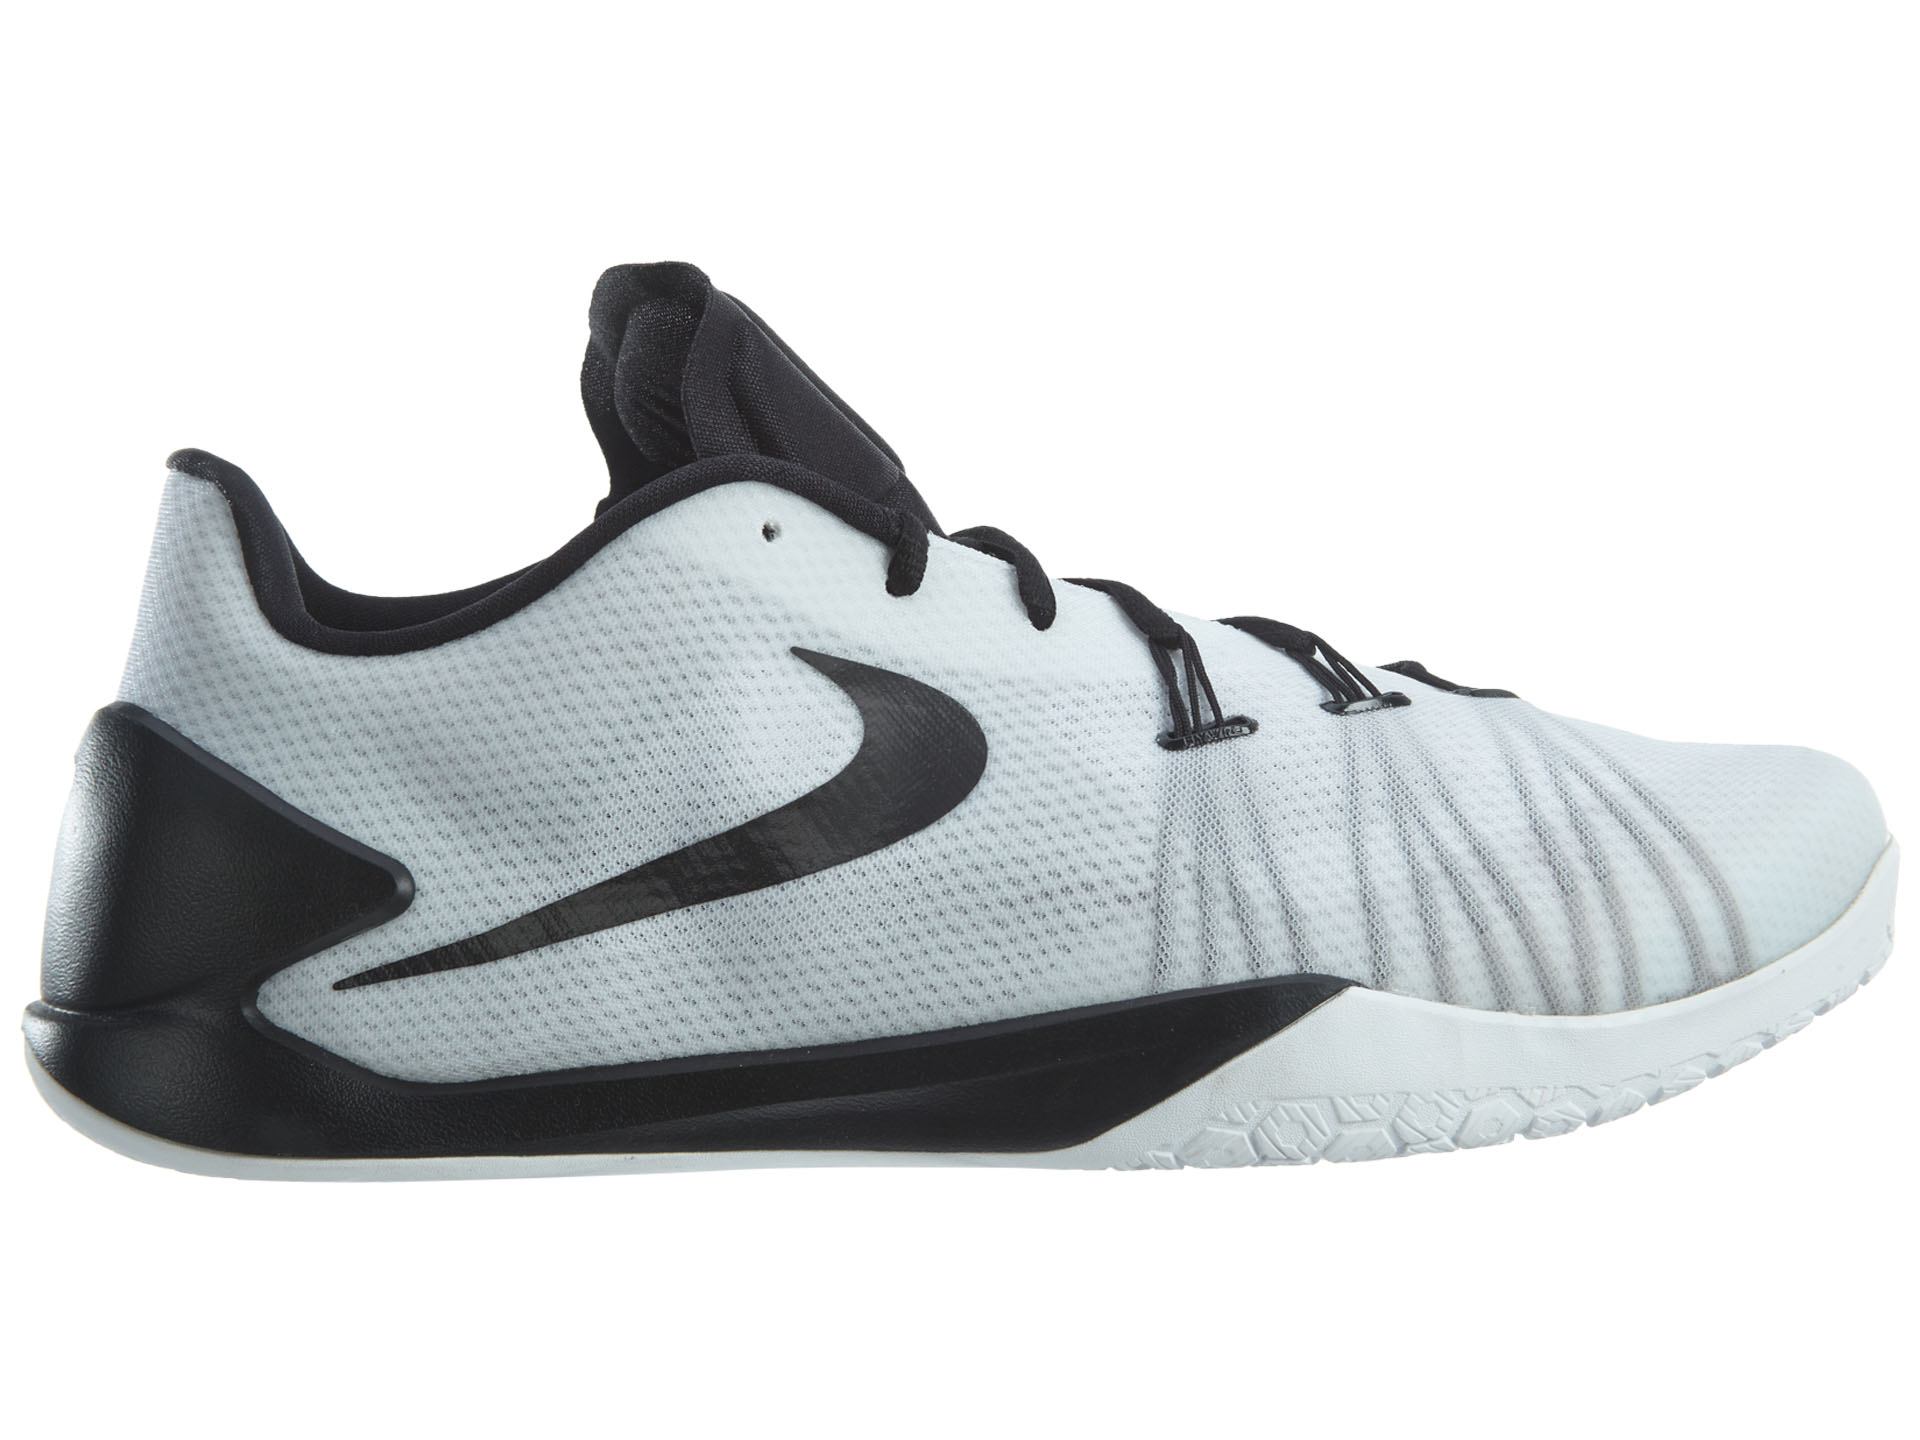 Nike Hyperchase Tb Mens Style : 749554